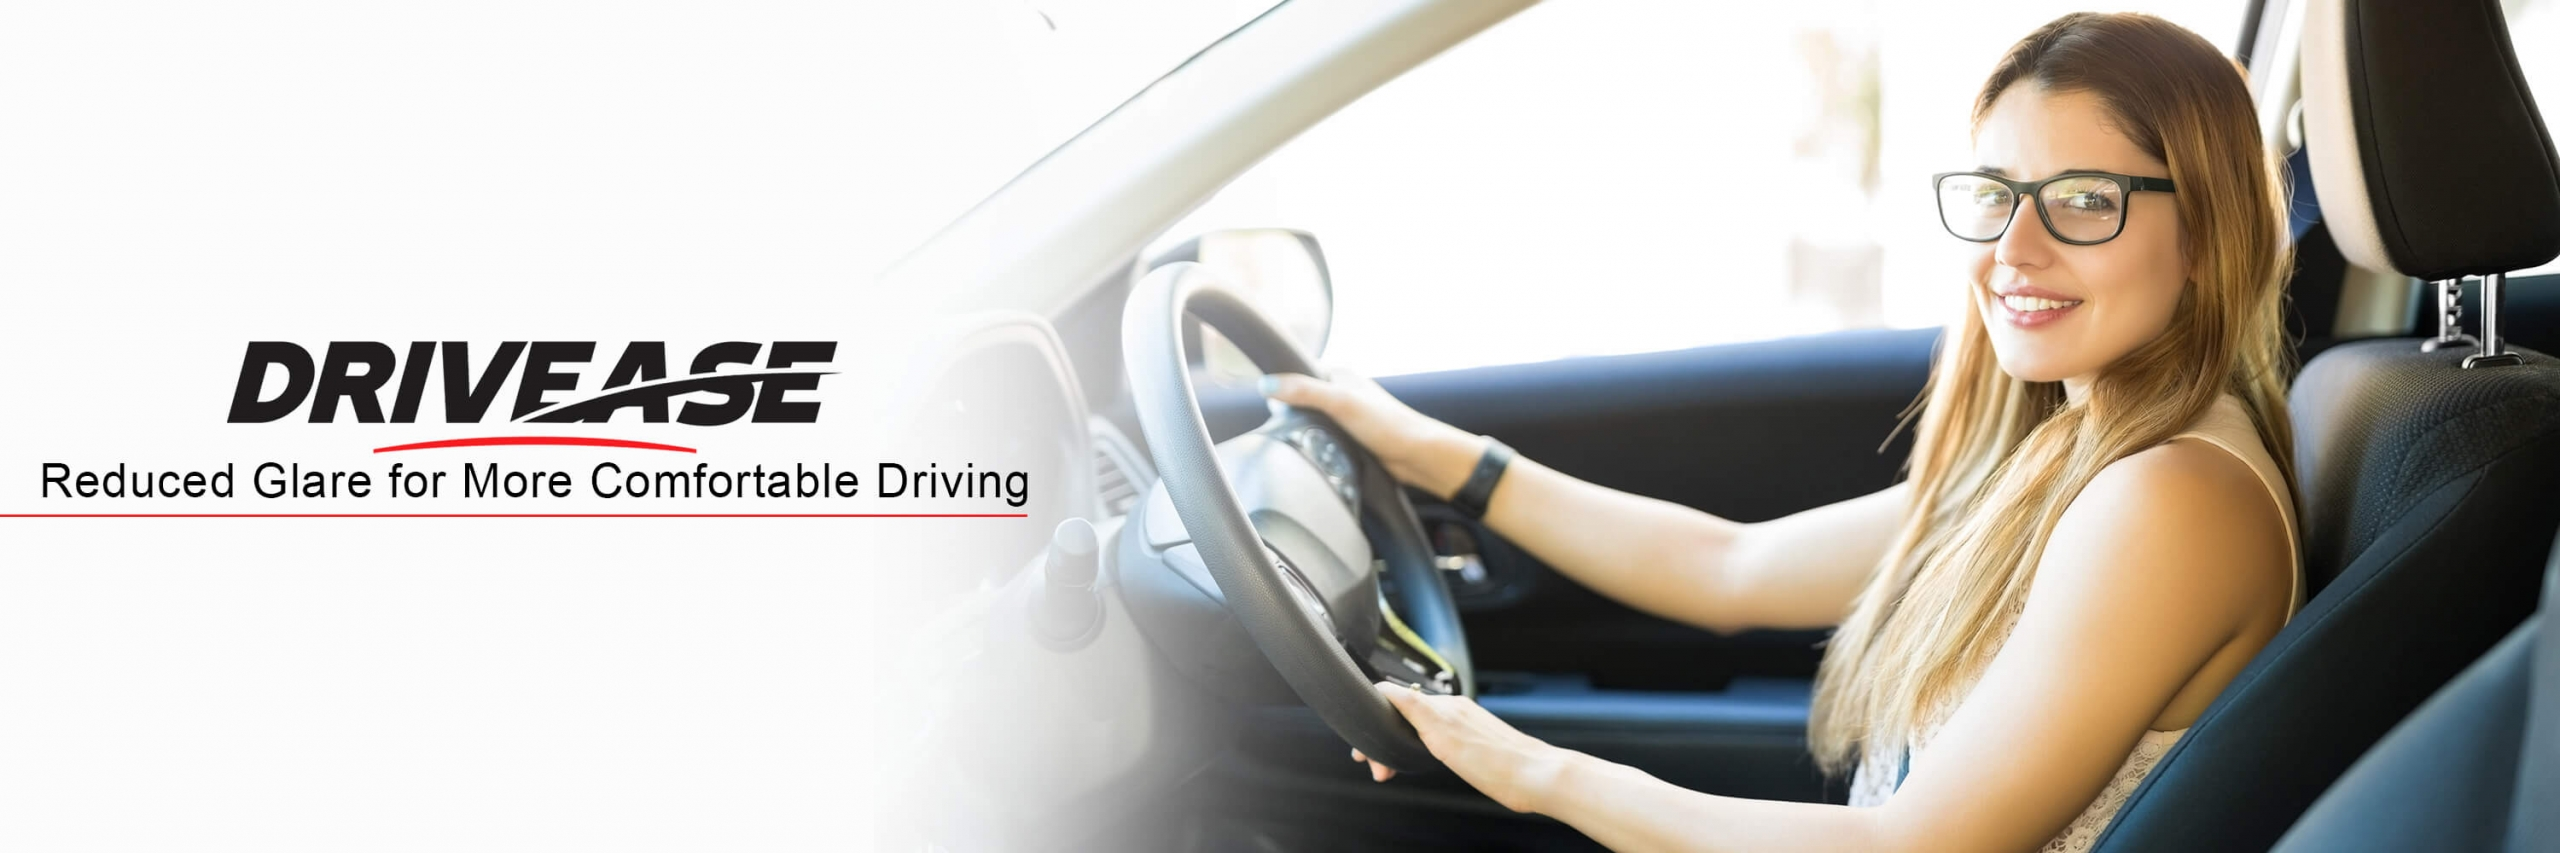 DRIVEASE Reduce Glare for More Comfortable Driving